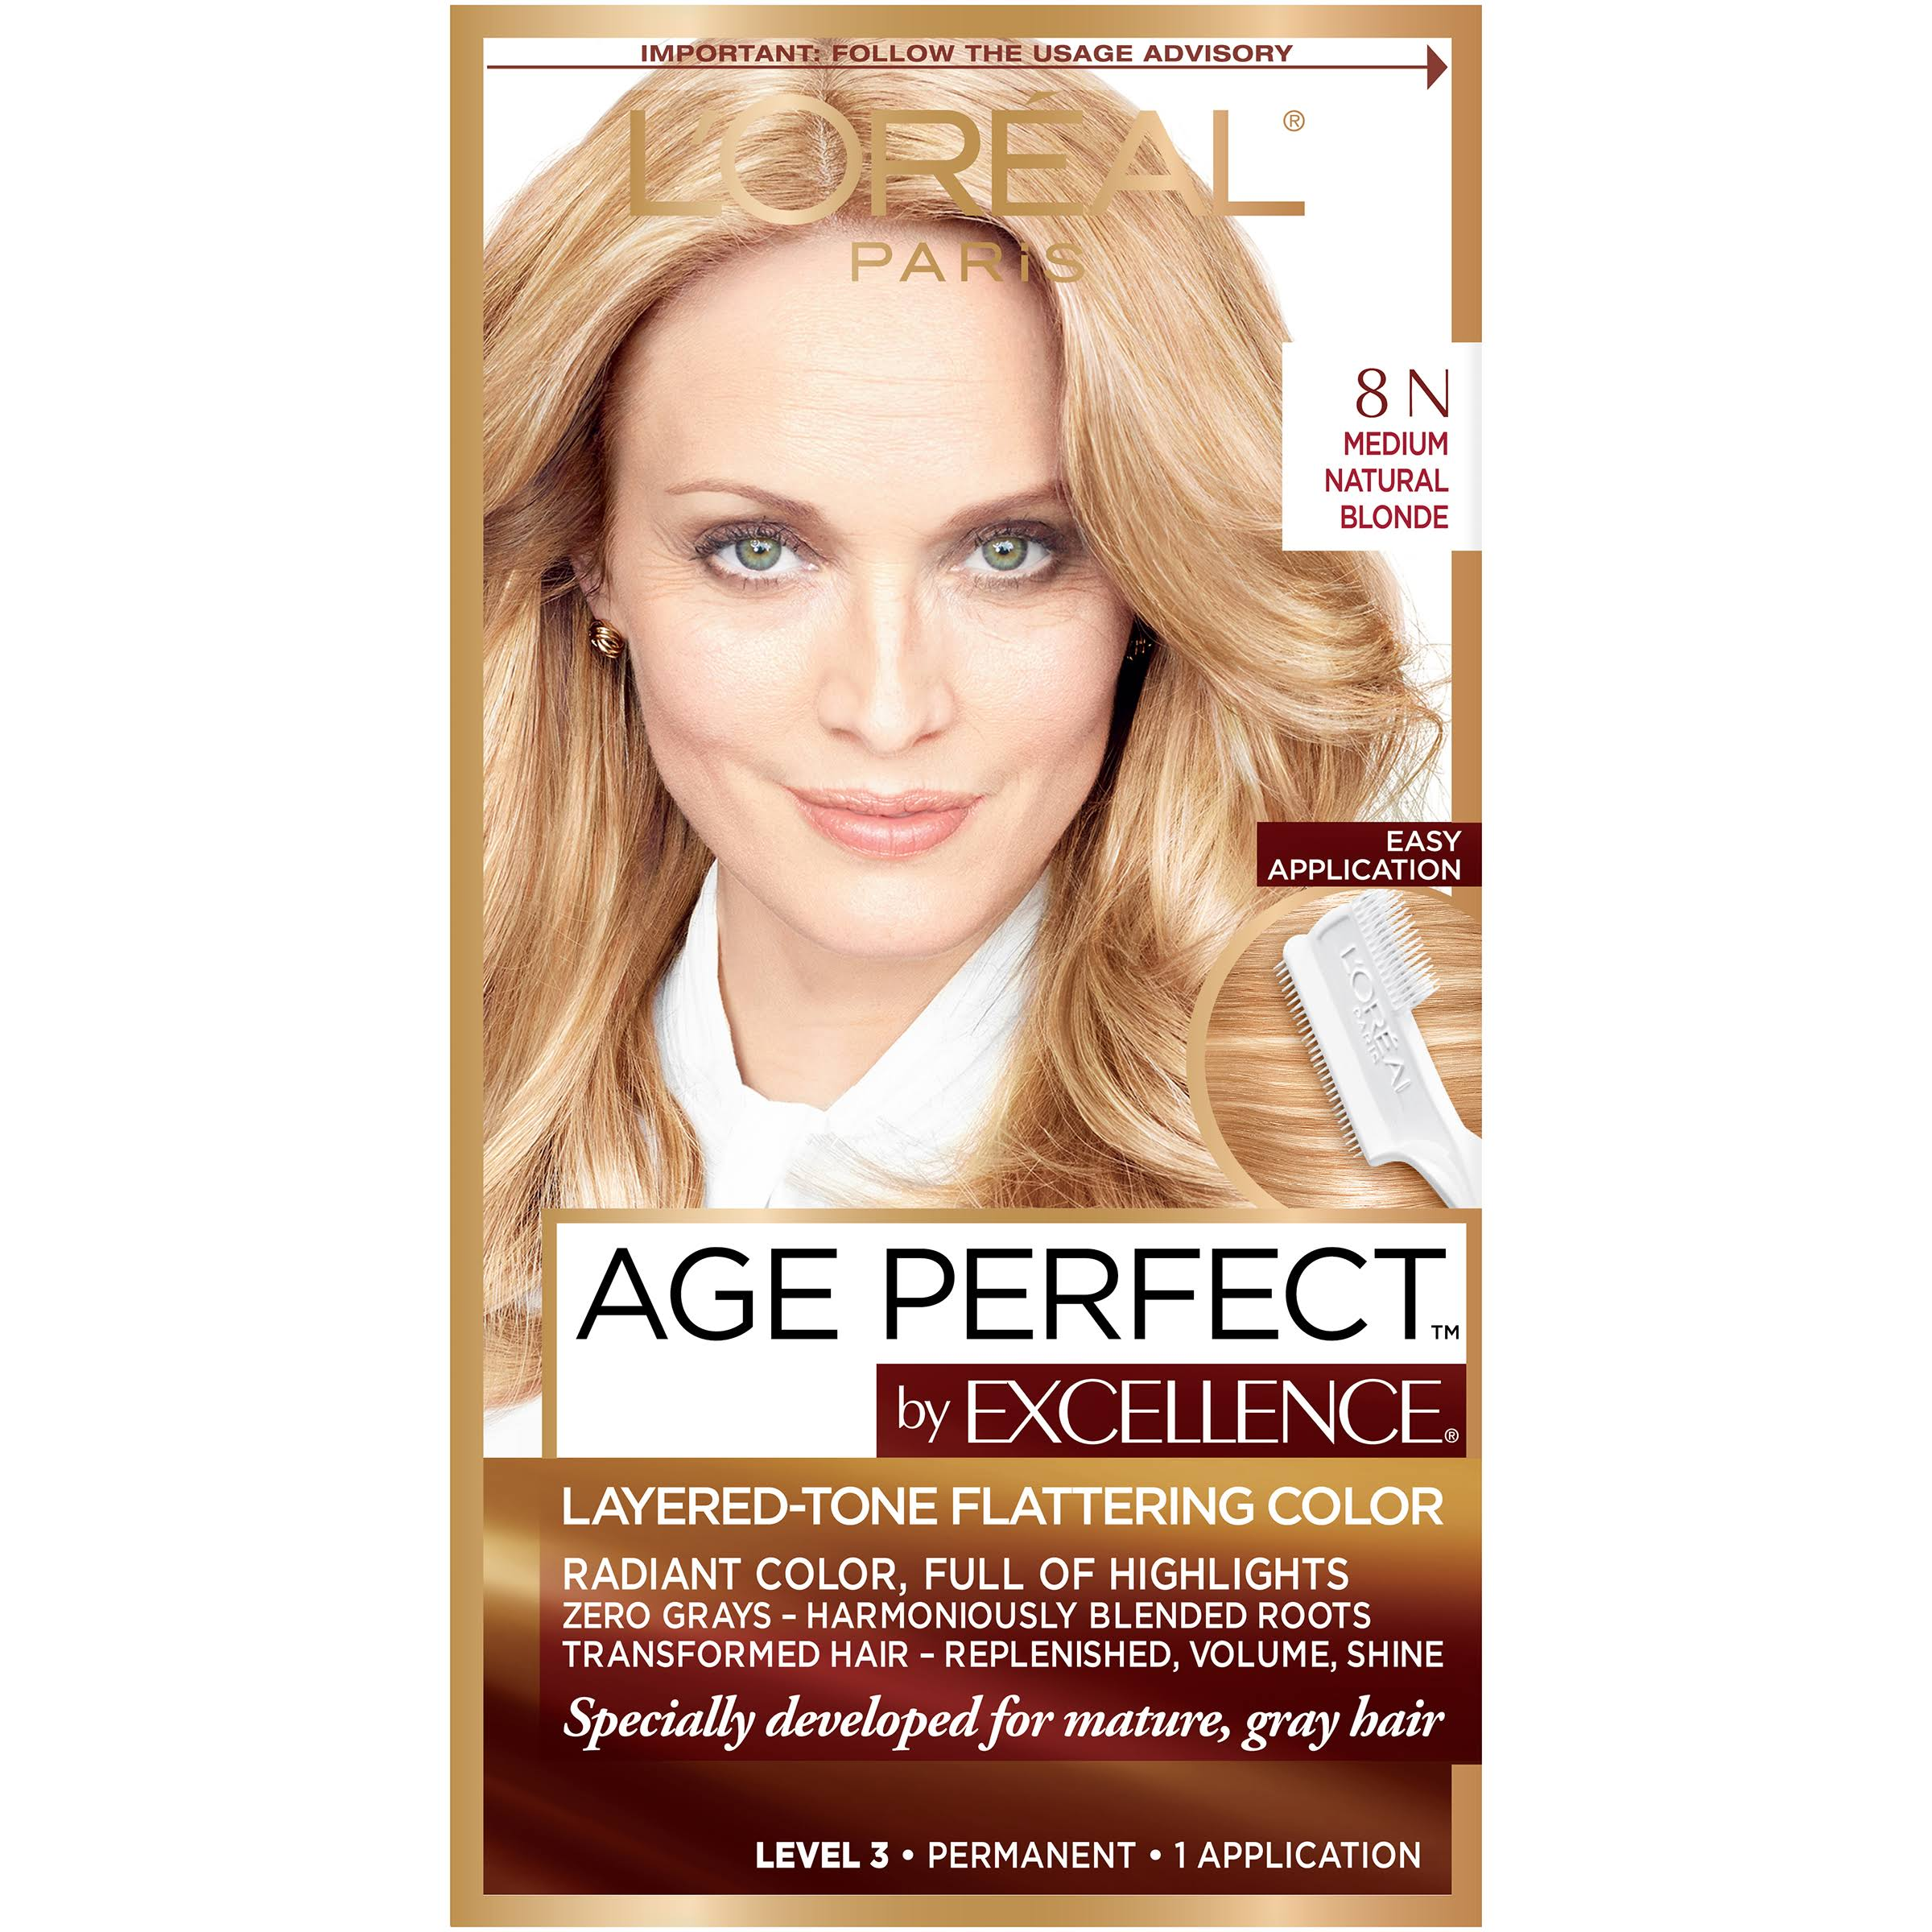 L'Oreal Paris Excellence Age Perfect 8N Medium Natural Blonde Hair Color